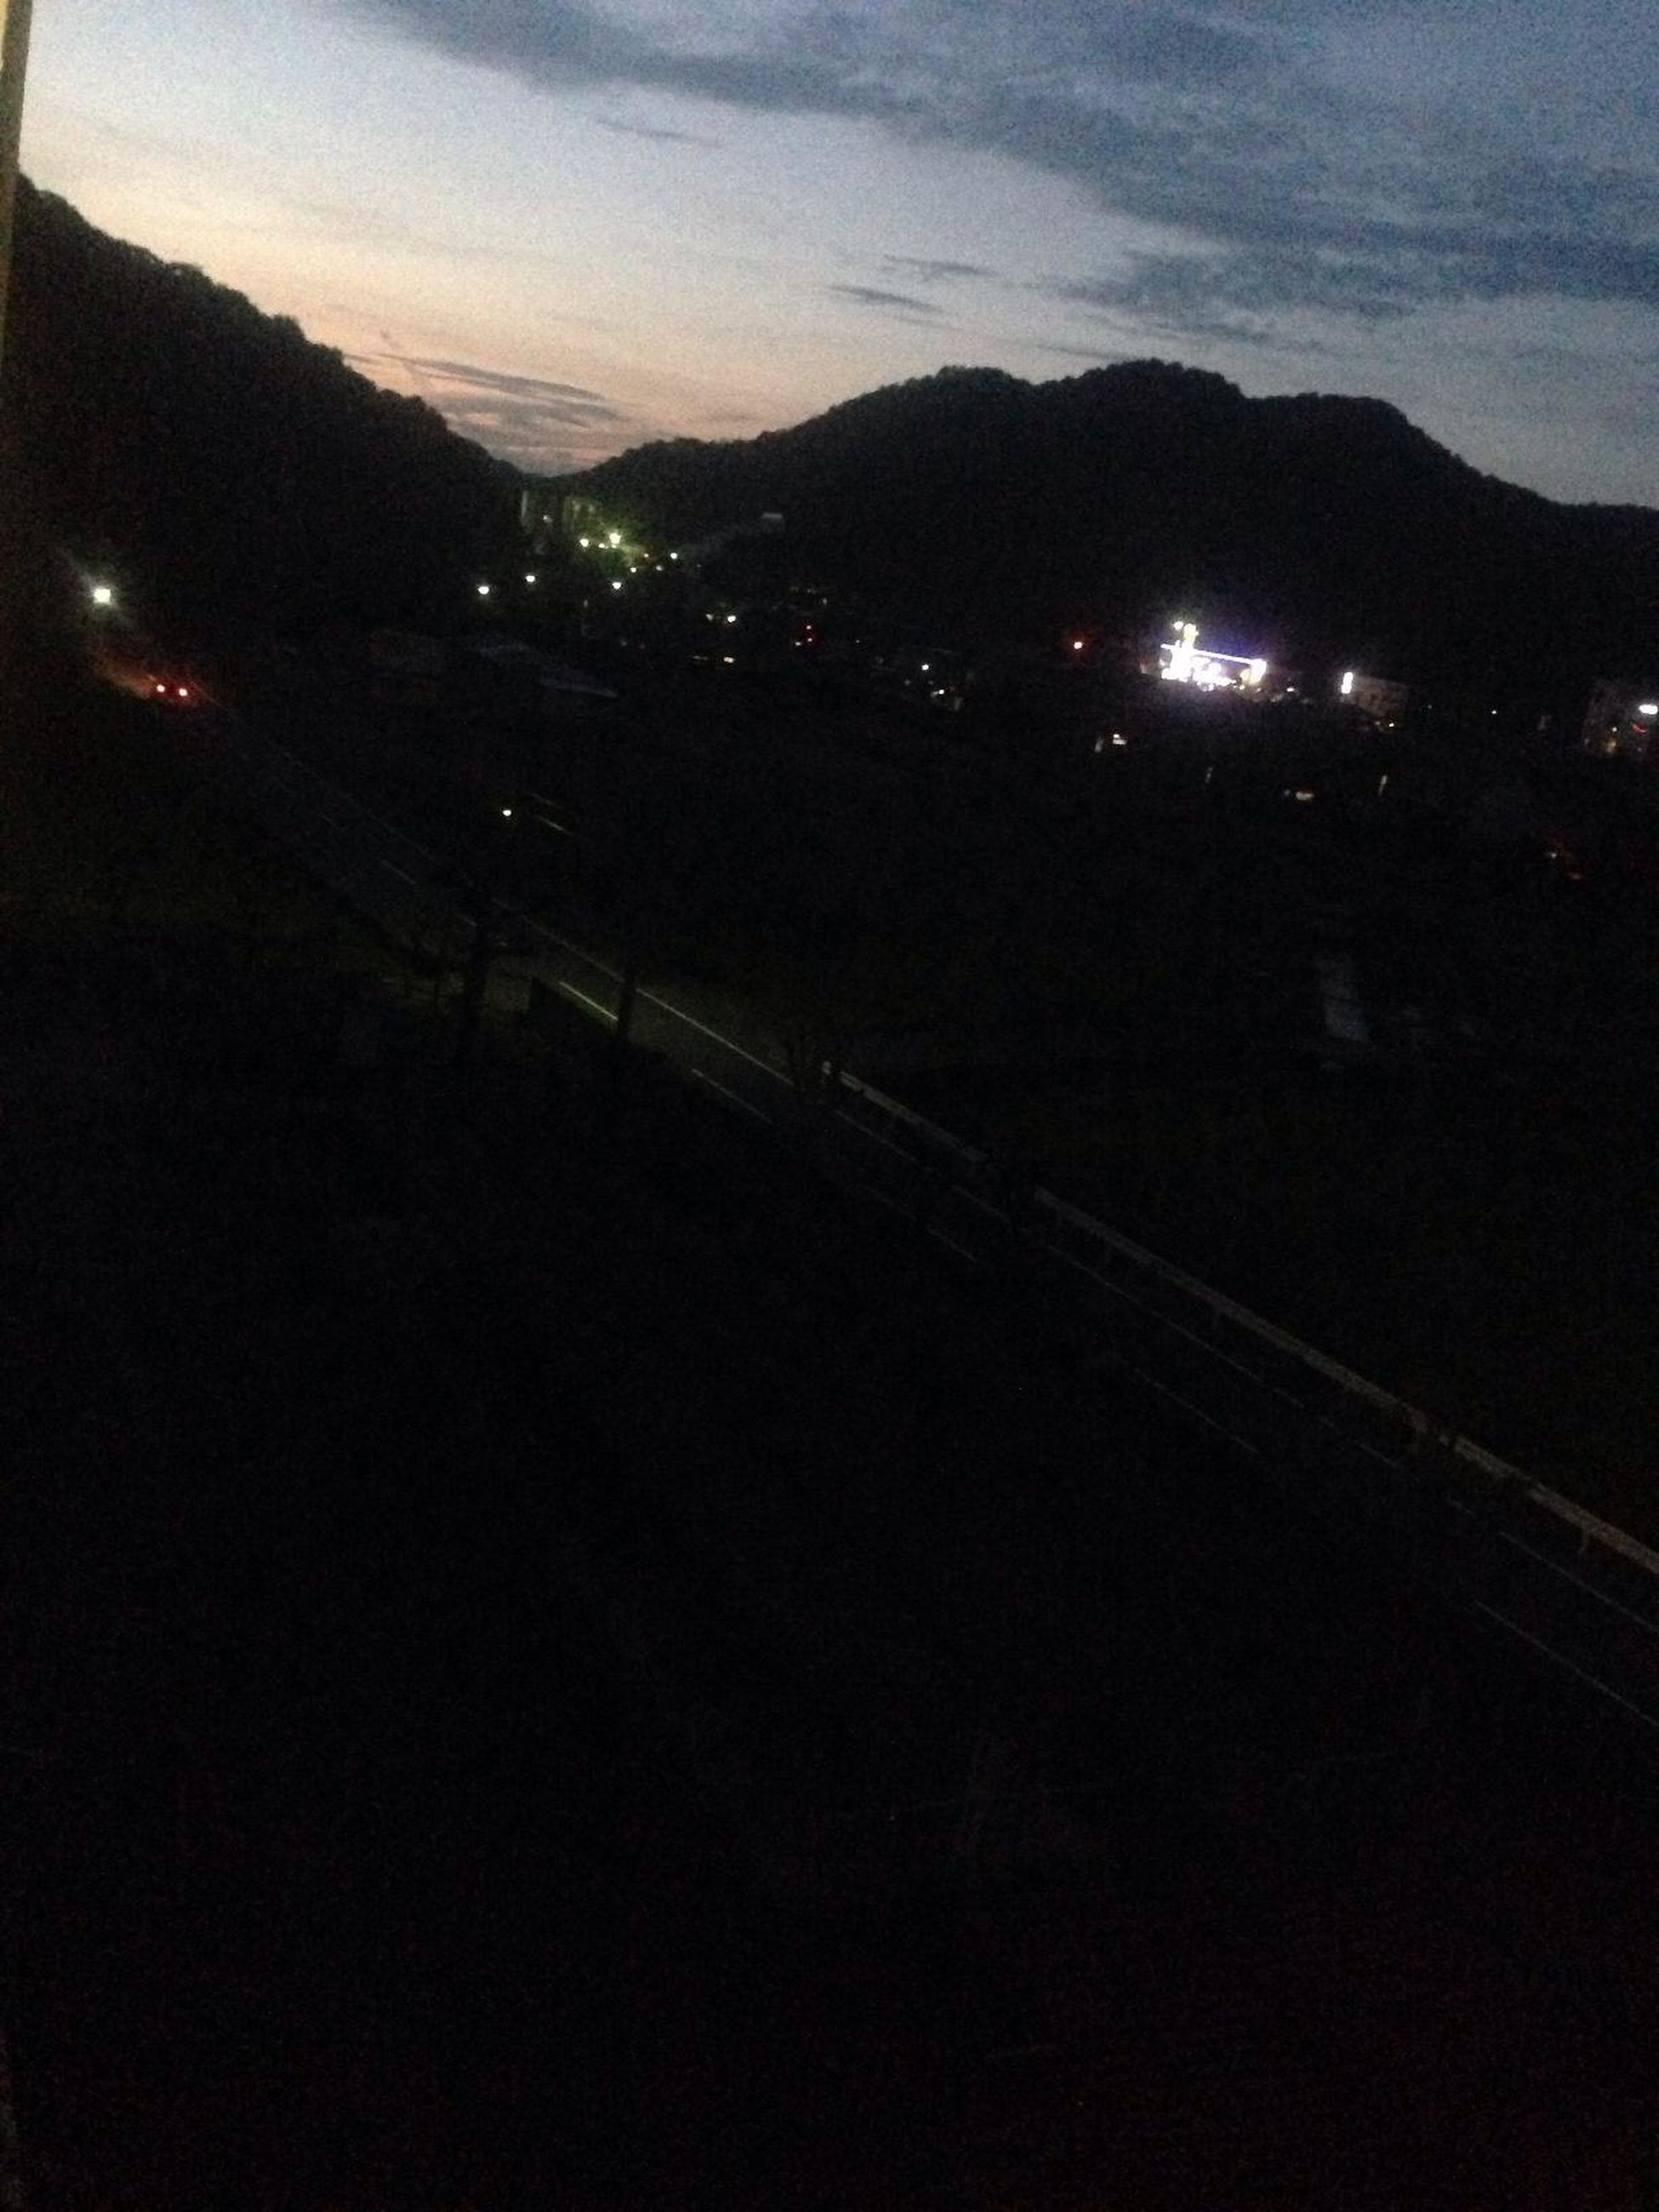 mountain, night, illuminated, sky, transportation, mountain range, scenics, silhouette, dusk, tranquil scene, landscape, beauty in nature, tranquility, sunset, nature, road, dark, outdoors, no people, cloud - sky